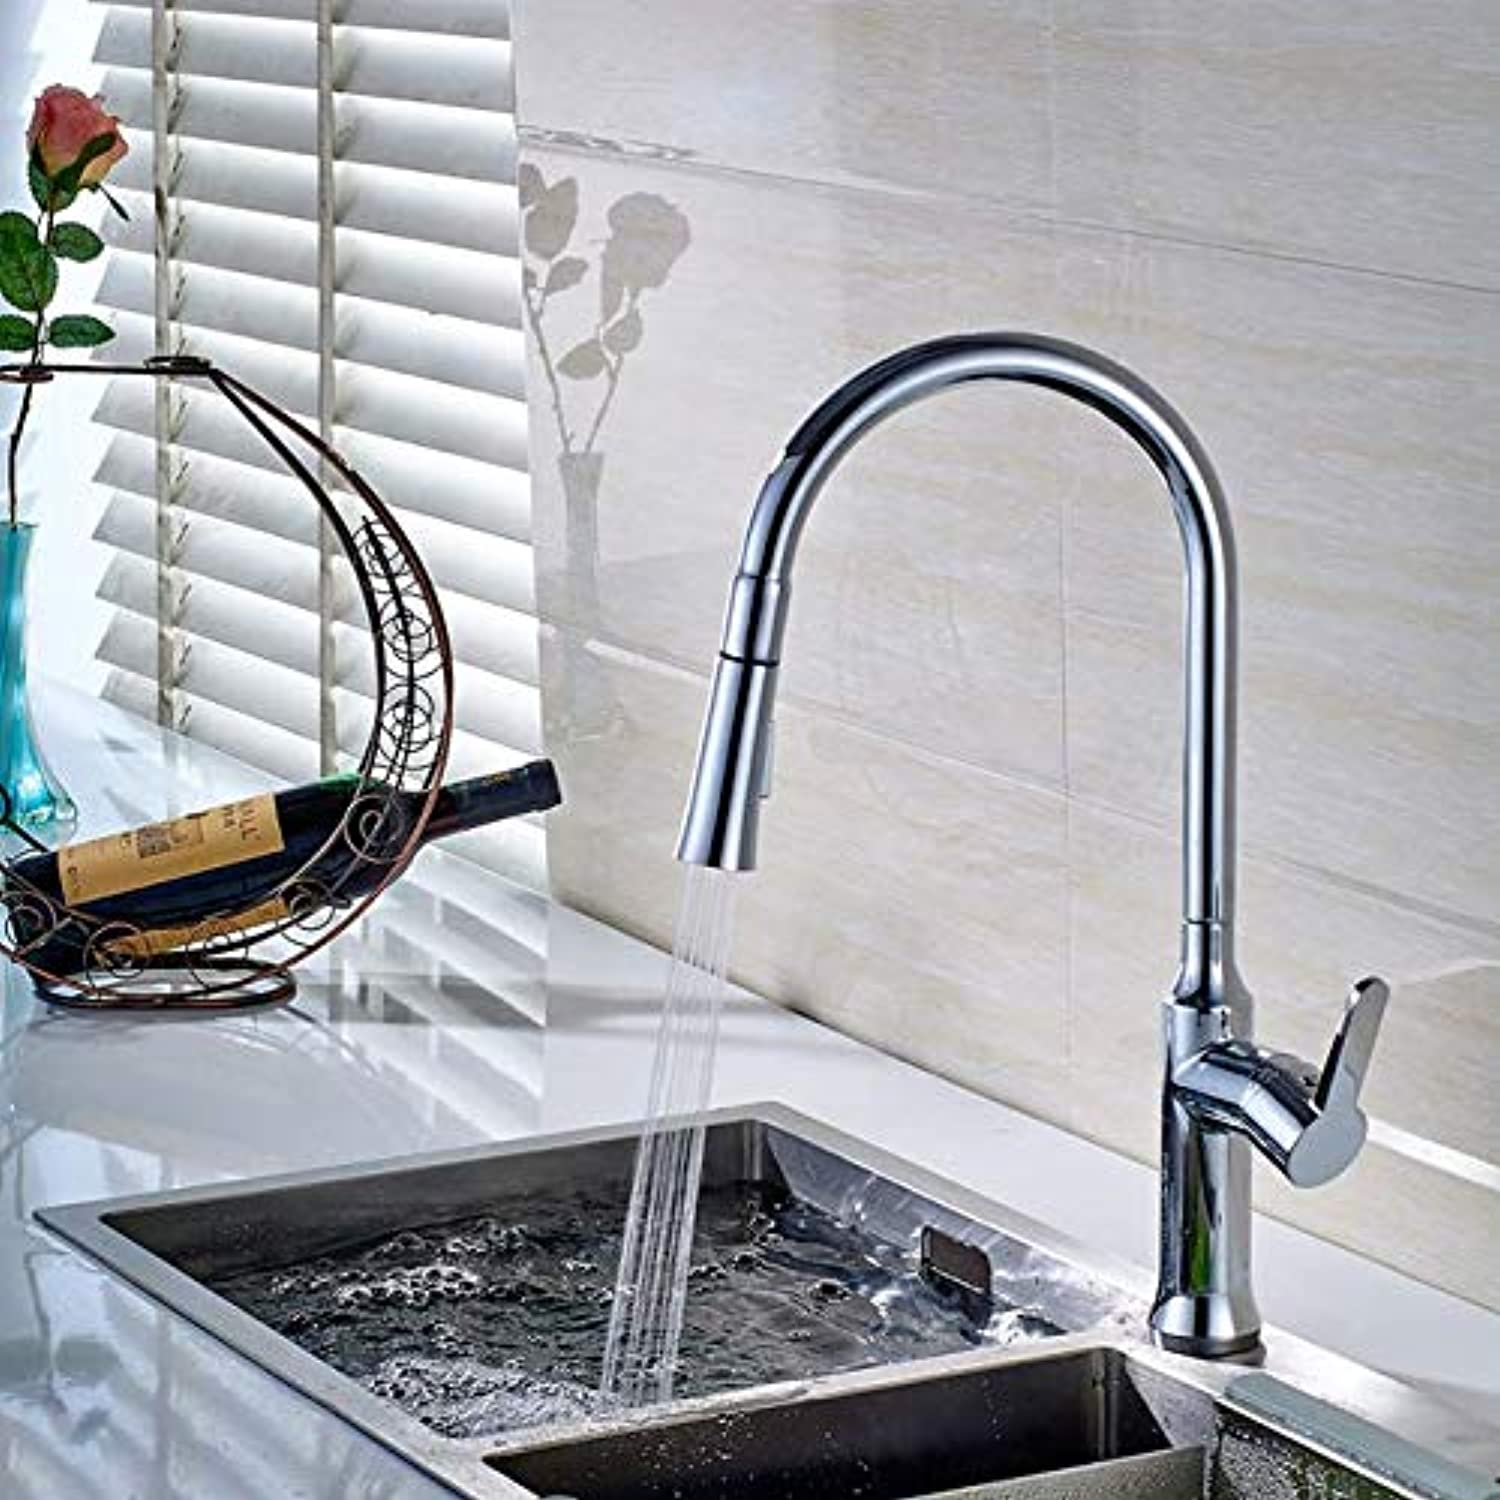 Decorry Contemporary Kitchen Faucet Copper Chrome redary Single Handle Single Hole Pulling Torneira Spring Kitchen Sink Tap